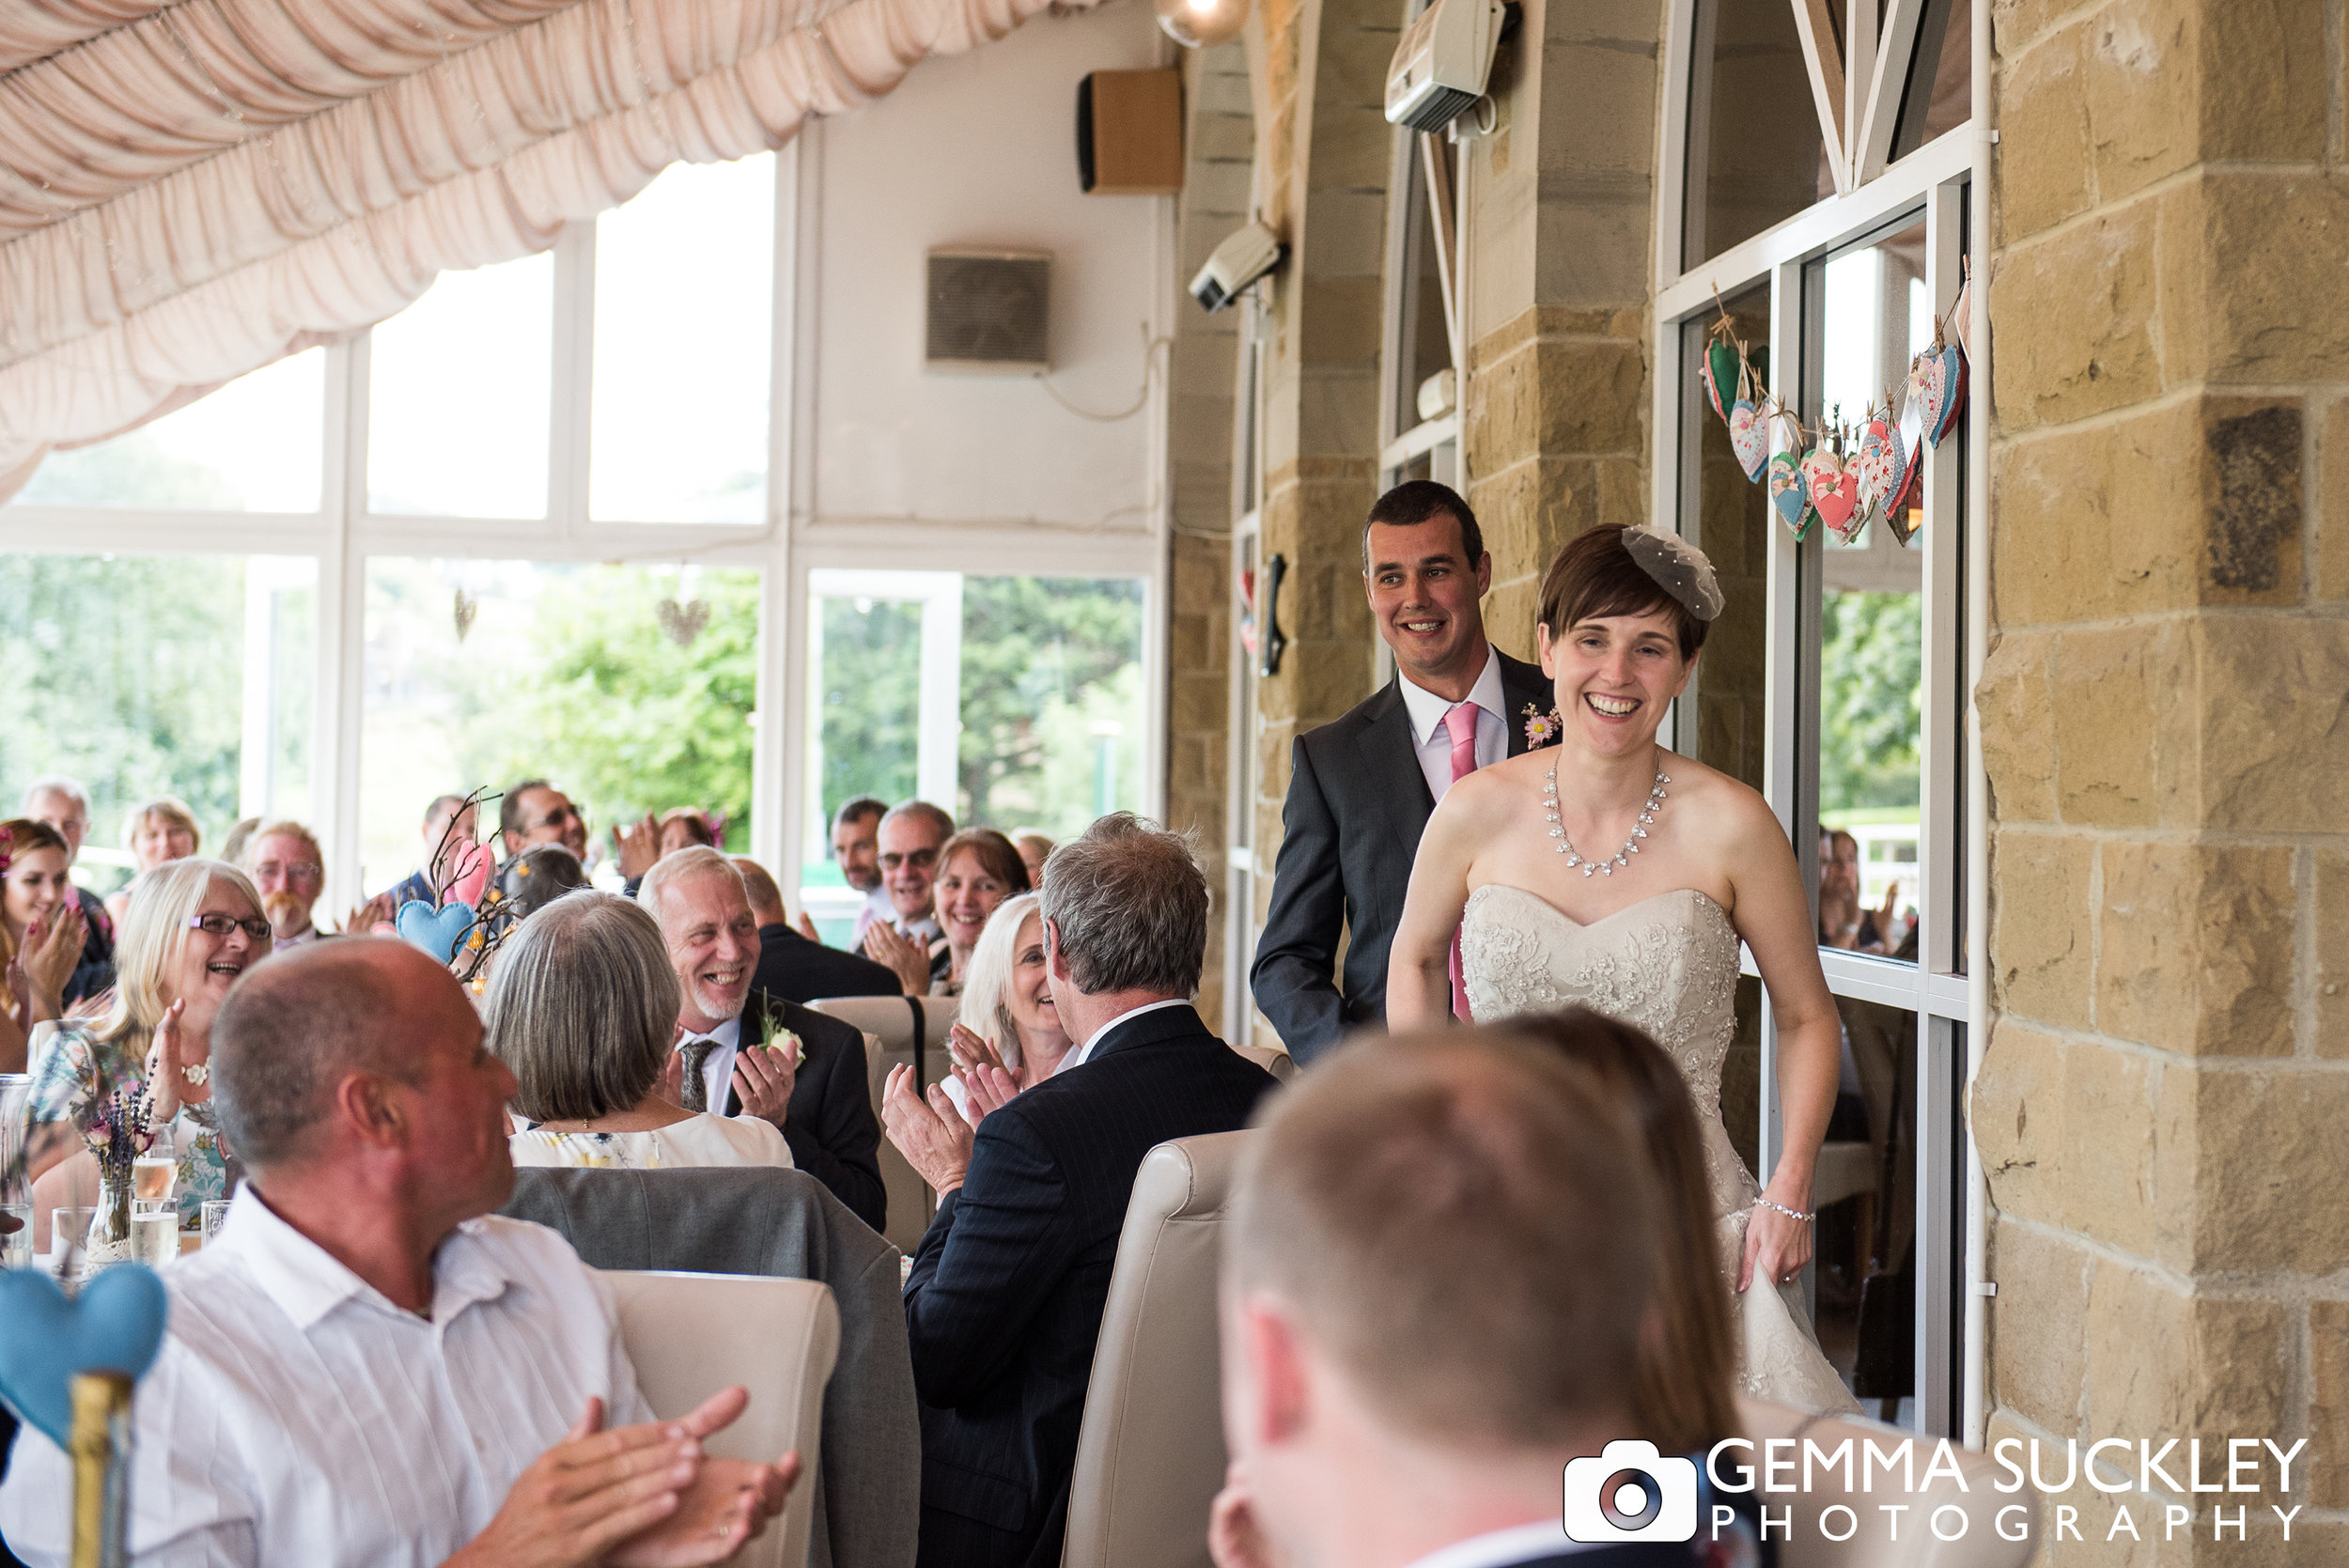 conservatory-wedding-in-skipton©gemmasuckleyphotography.jpg